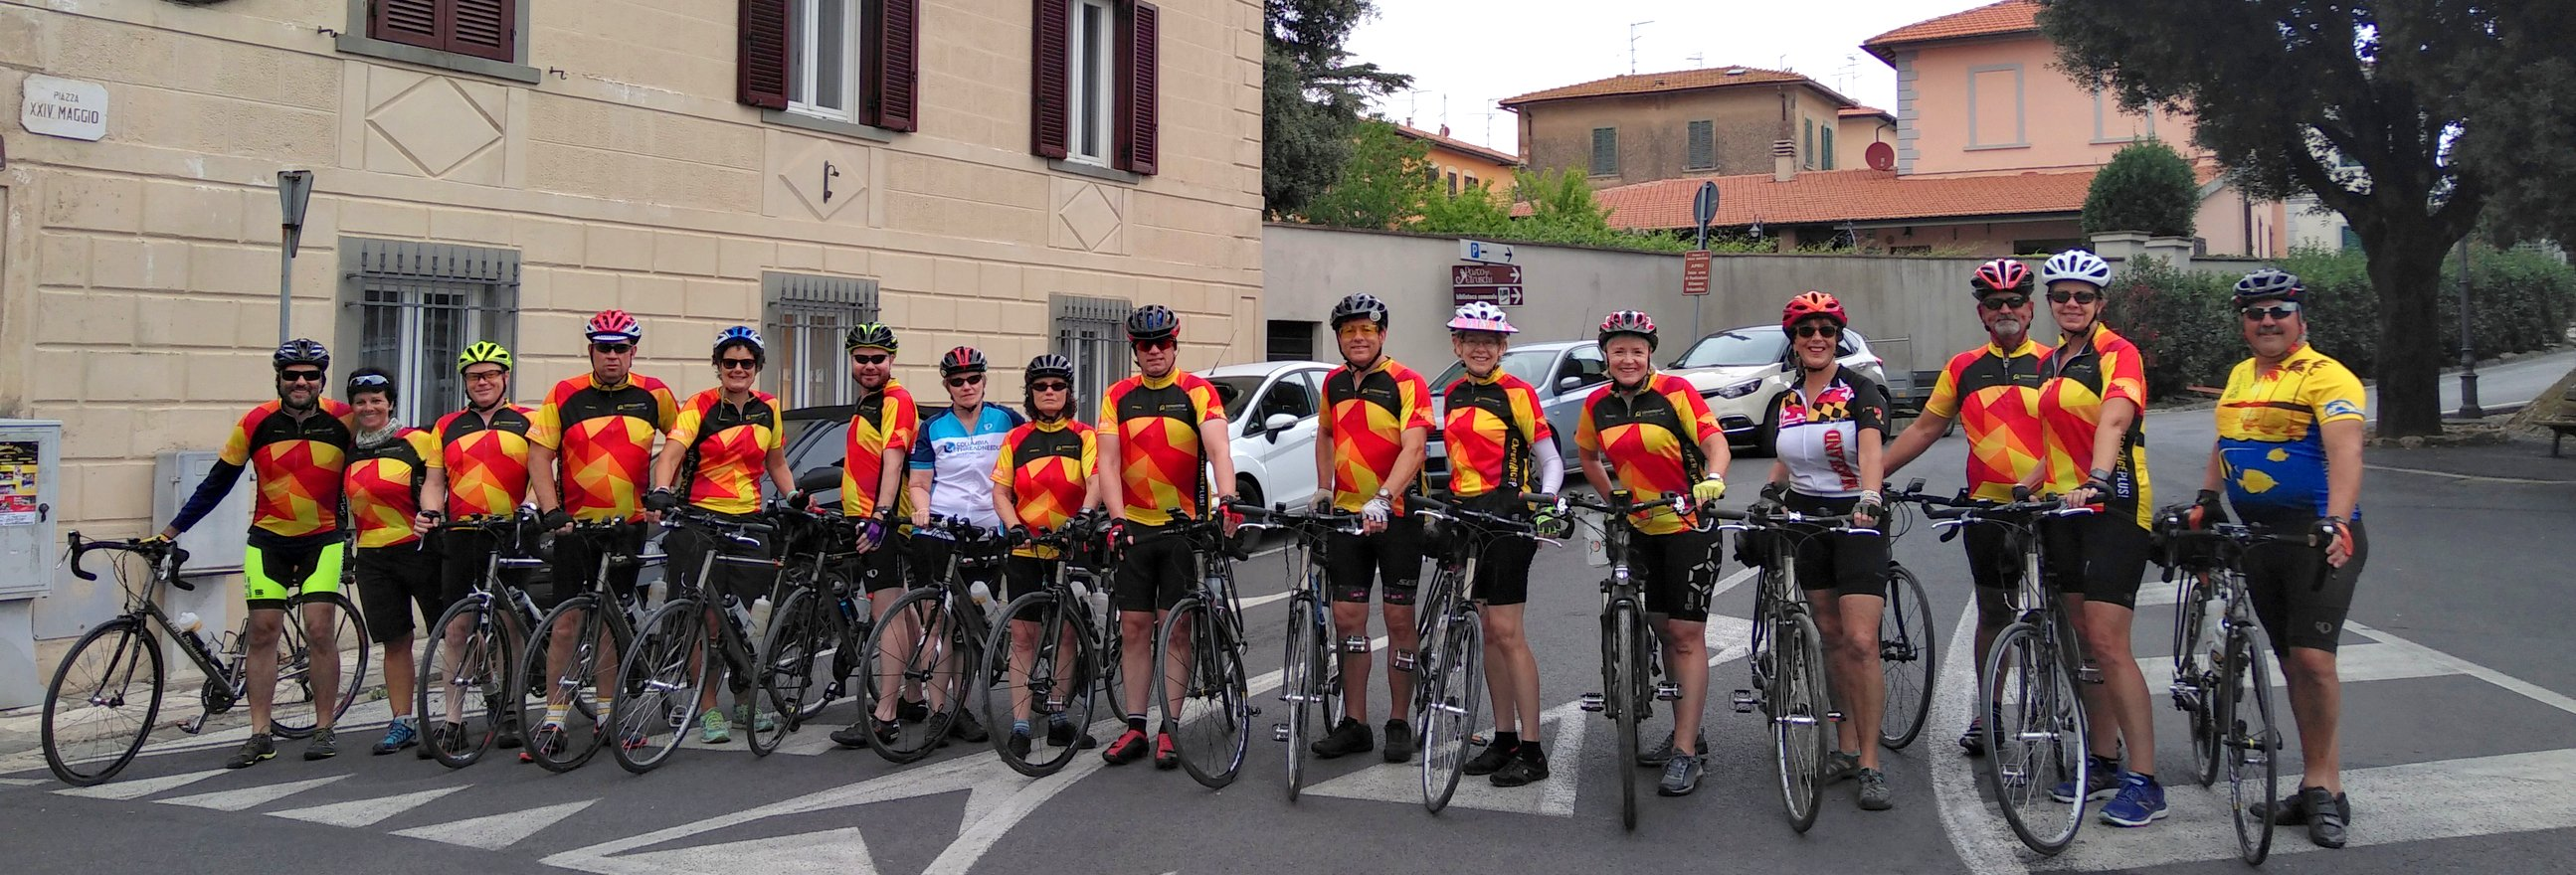 A group lines up for a photo shoot on their Hidden Tuscany guided bike tour.